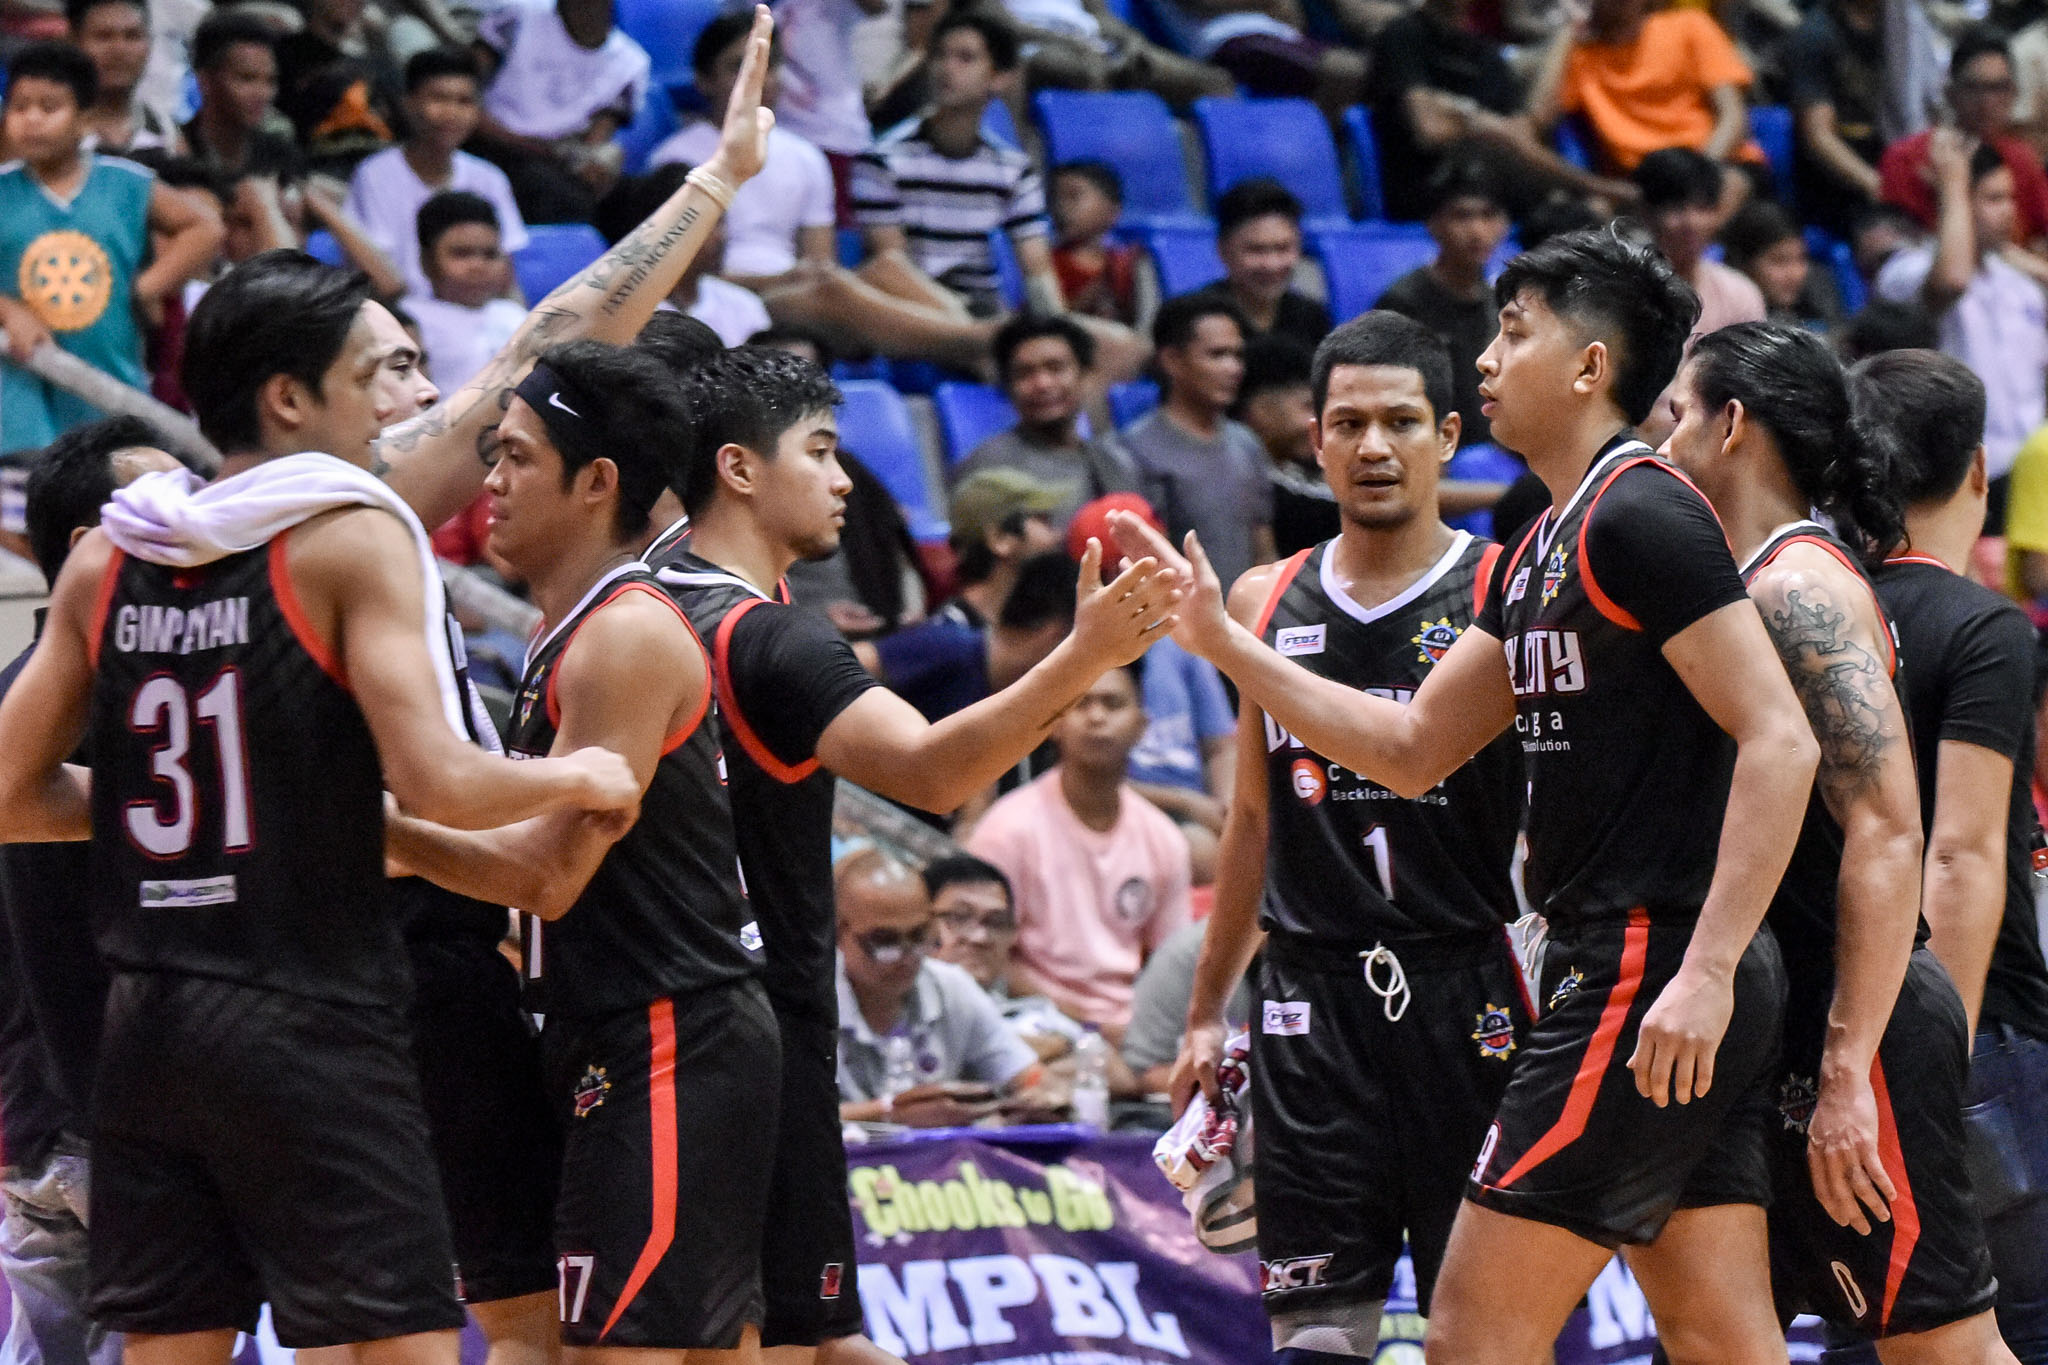 Tiebreaker Times Hubalde, Valenzuela thrill in last MPBL home game, send Rizal to the bottom Basketball MPBL News  Valenzuela Classic Ronjay Enrile Rizal-Xentro Mall Golden Coolers Reneford Ruaya Paolo Hubalde Mark Benitez Jayvee Vidal Andrey Armenion 2019-20 MPBL Lakan Cup